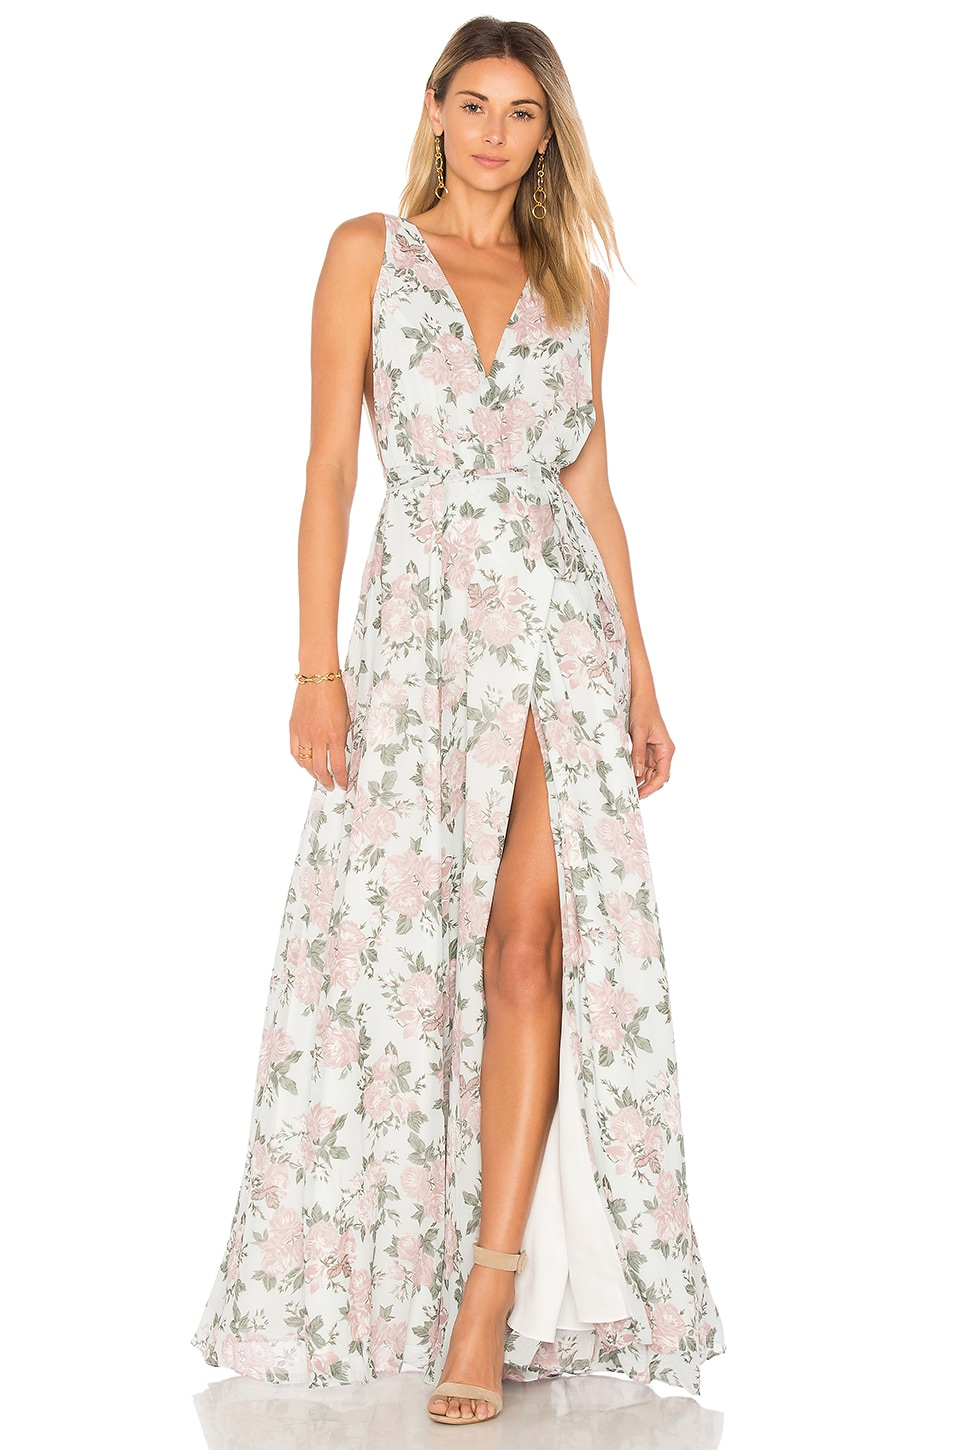 Lovers + Friends Leah Gown in Sea Foam Flore